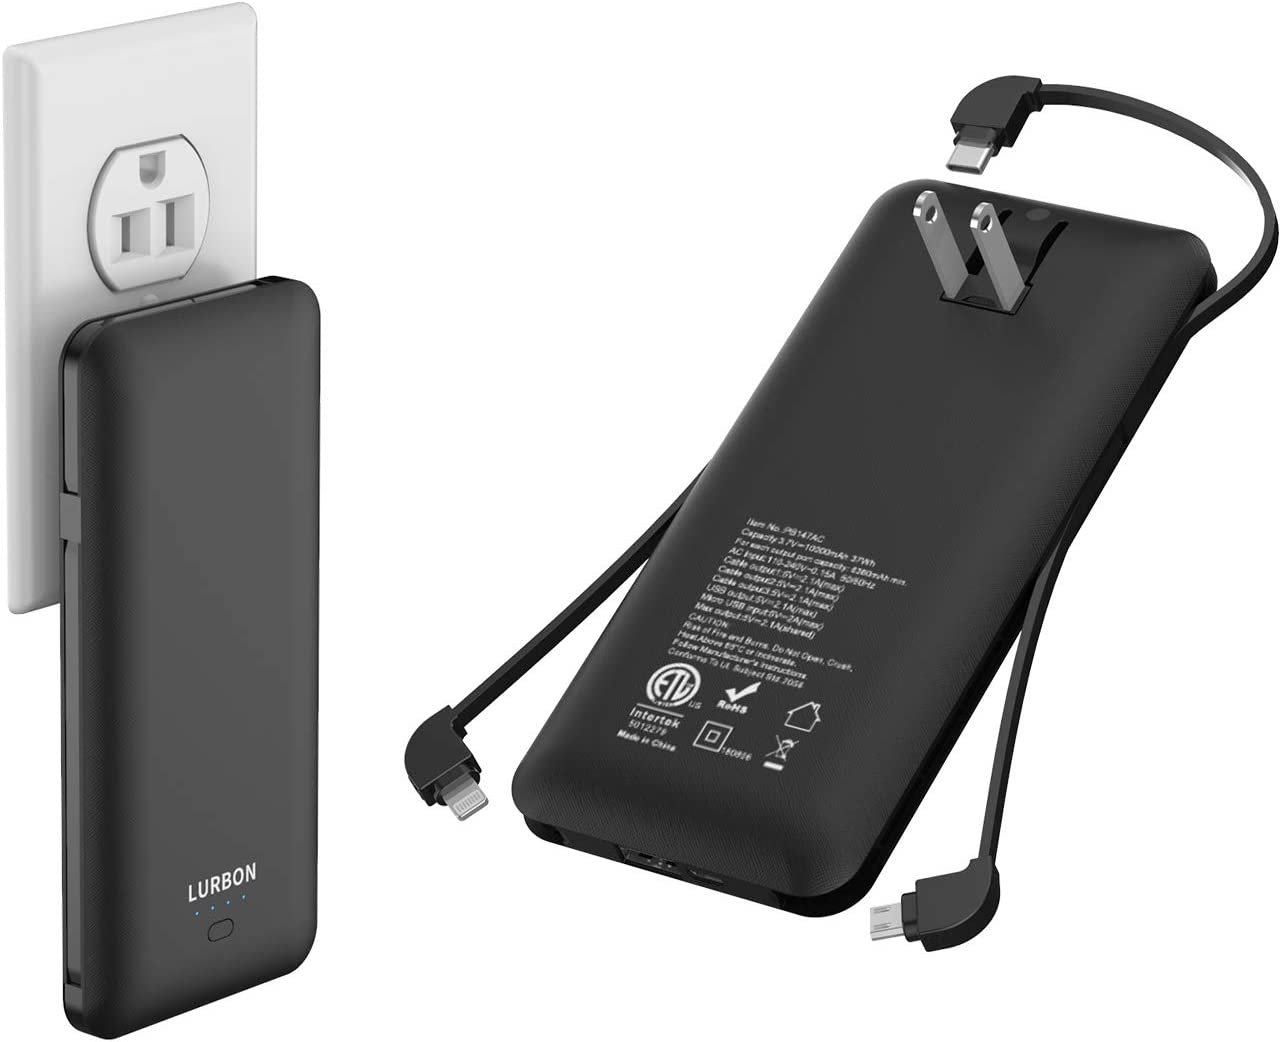 10000 mAh Portable Charger Power Bank Ultra Slim External Battery Pack with Built in AC Plug Type-c Cable,Micro Cable and Other Cable for Cell Phone